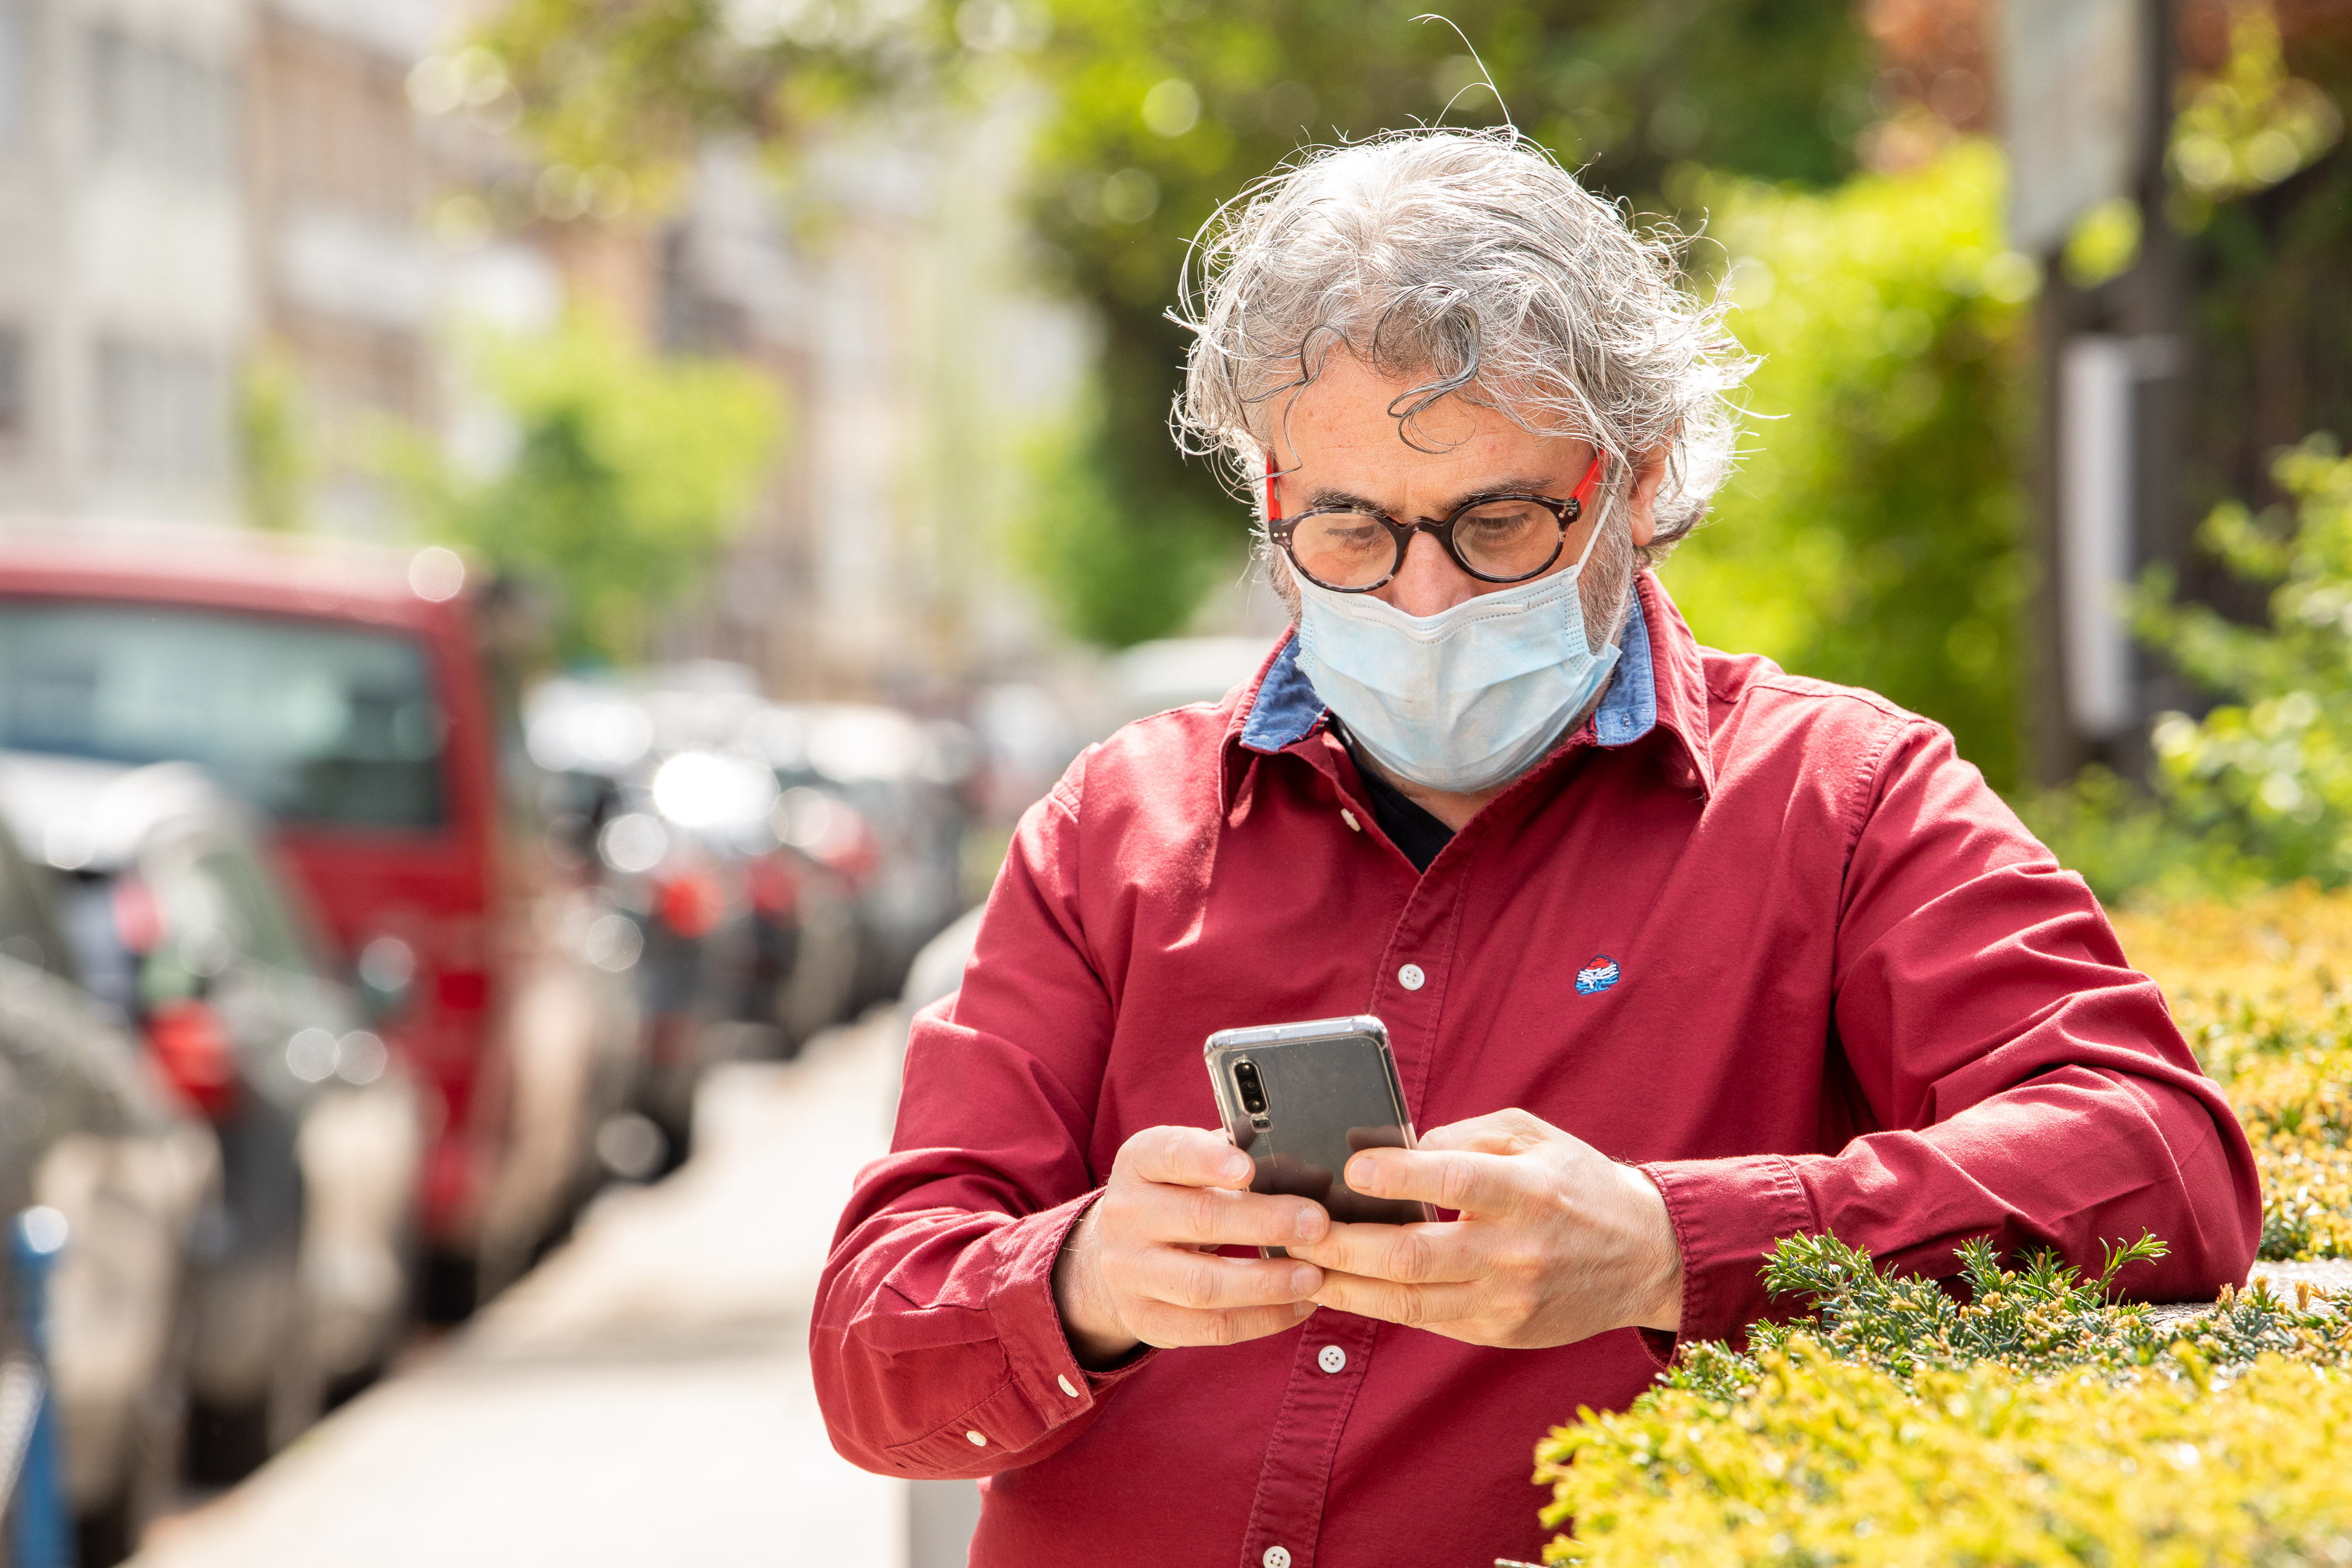 A man with a face mask using an application on his smartphone